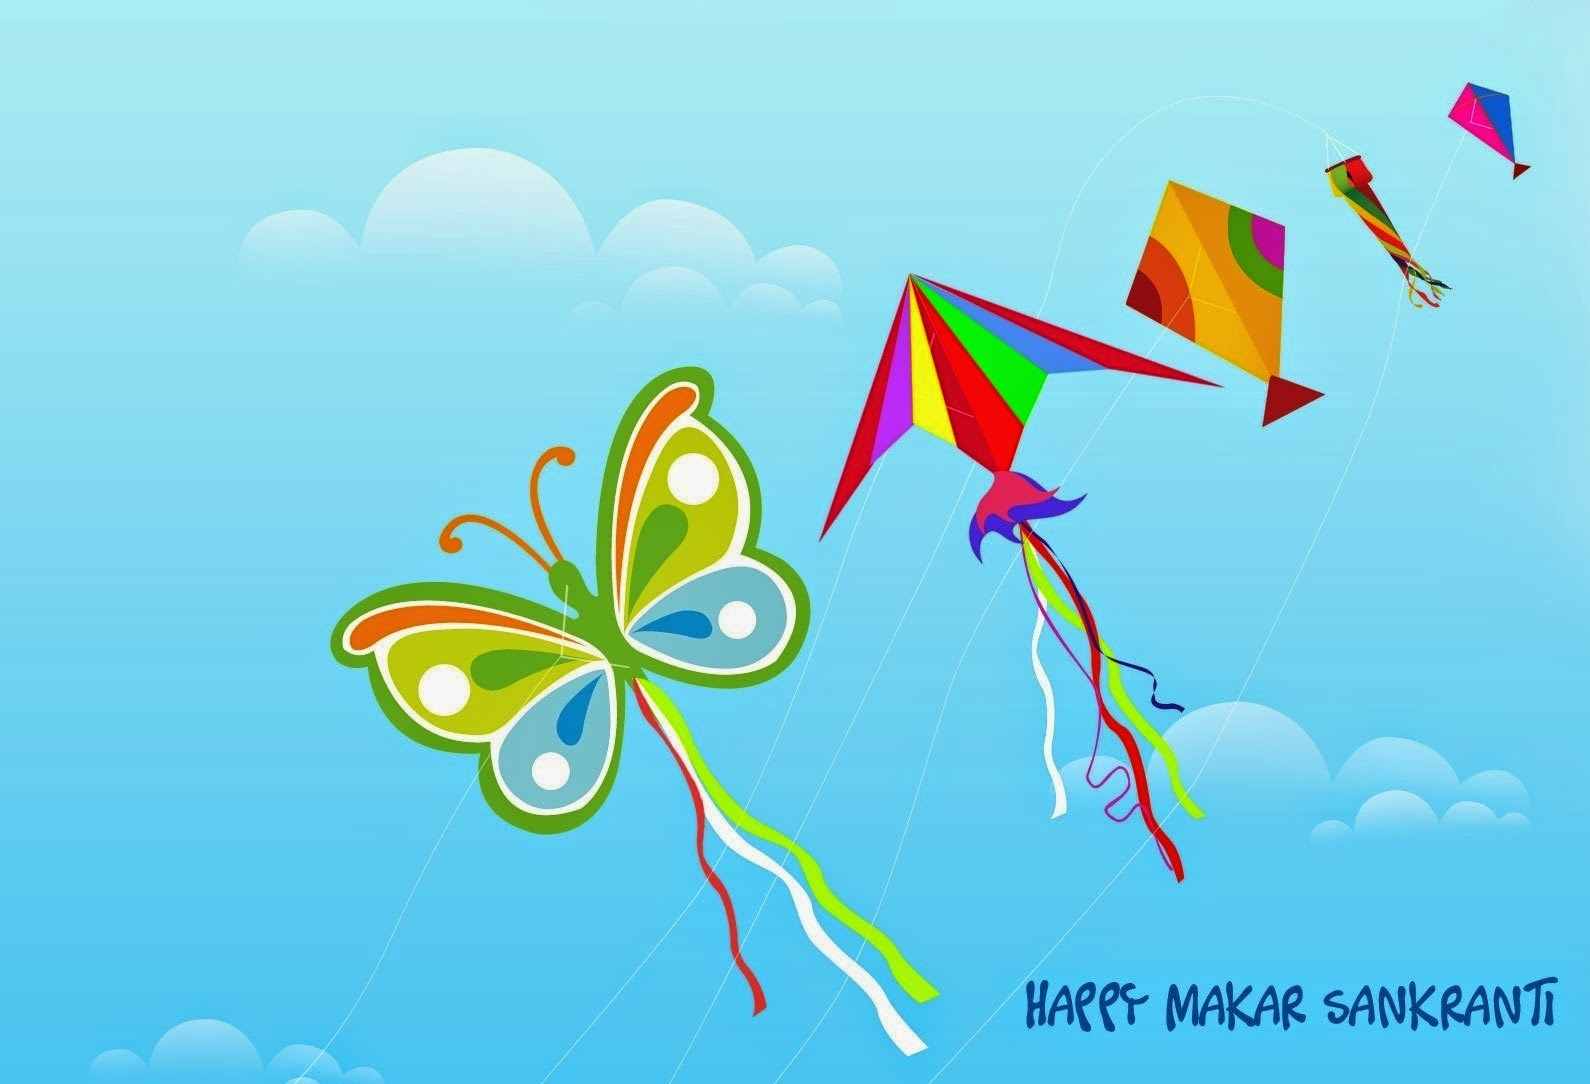 Happy Makar Sankranti 2015 Images